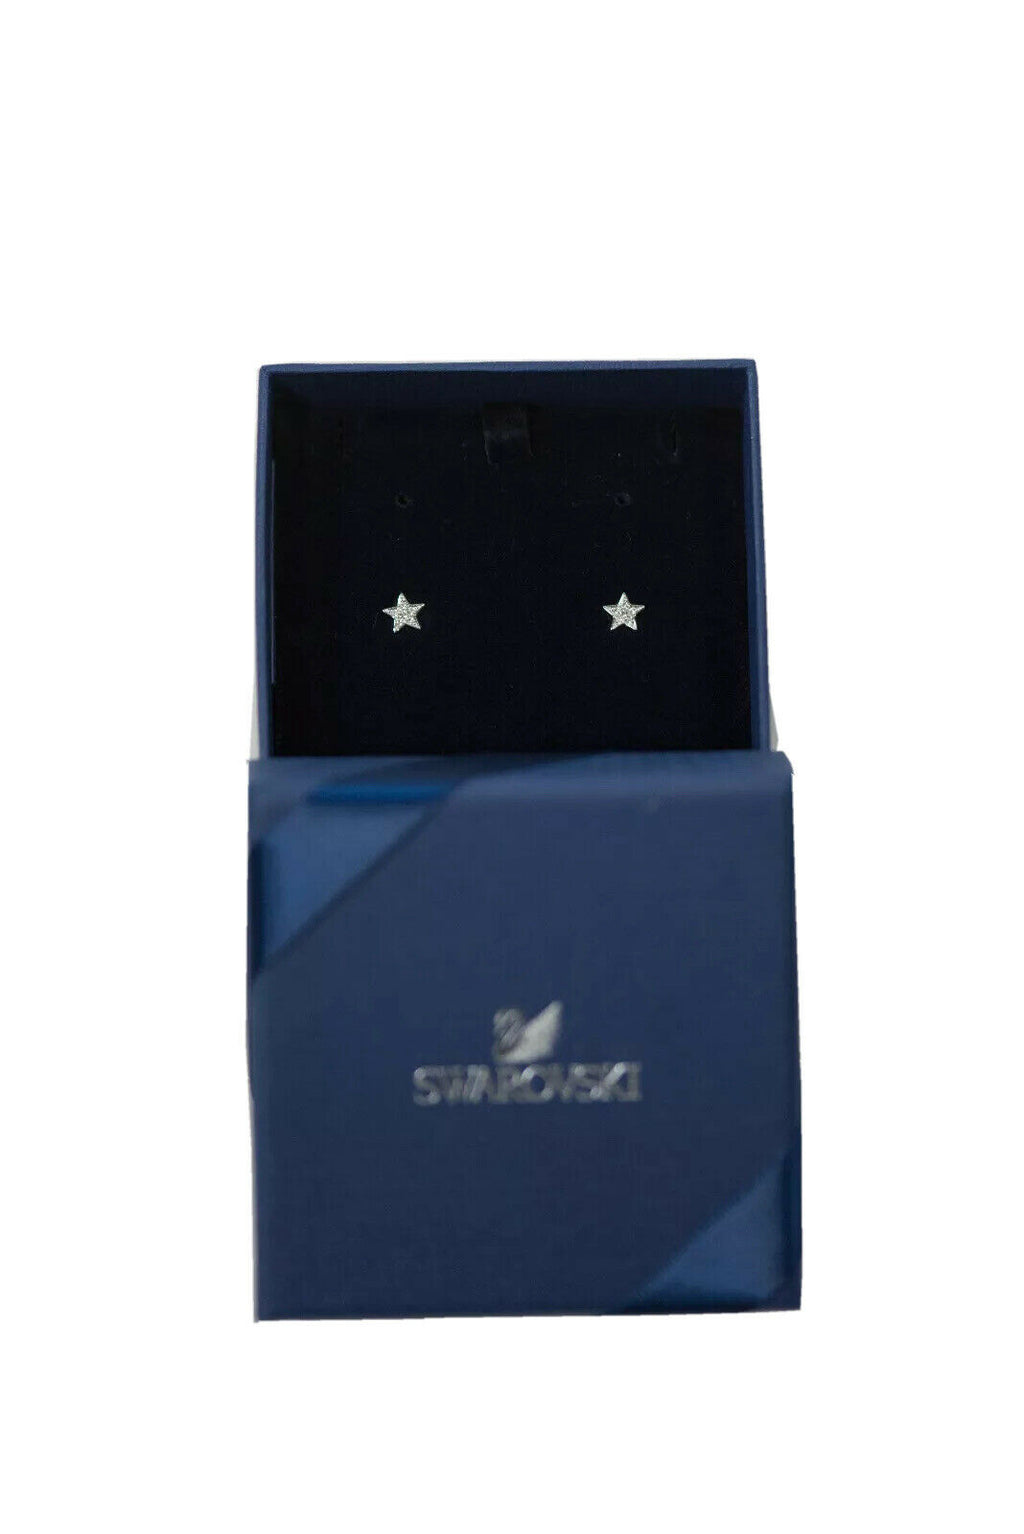 Swarvoski Silver Stud 925 Sterling Star Earrings